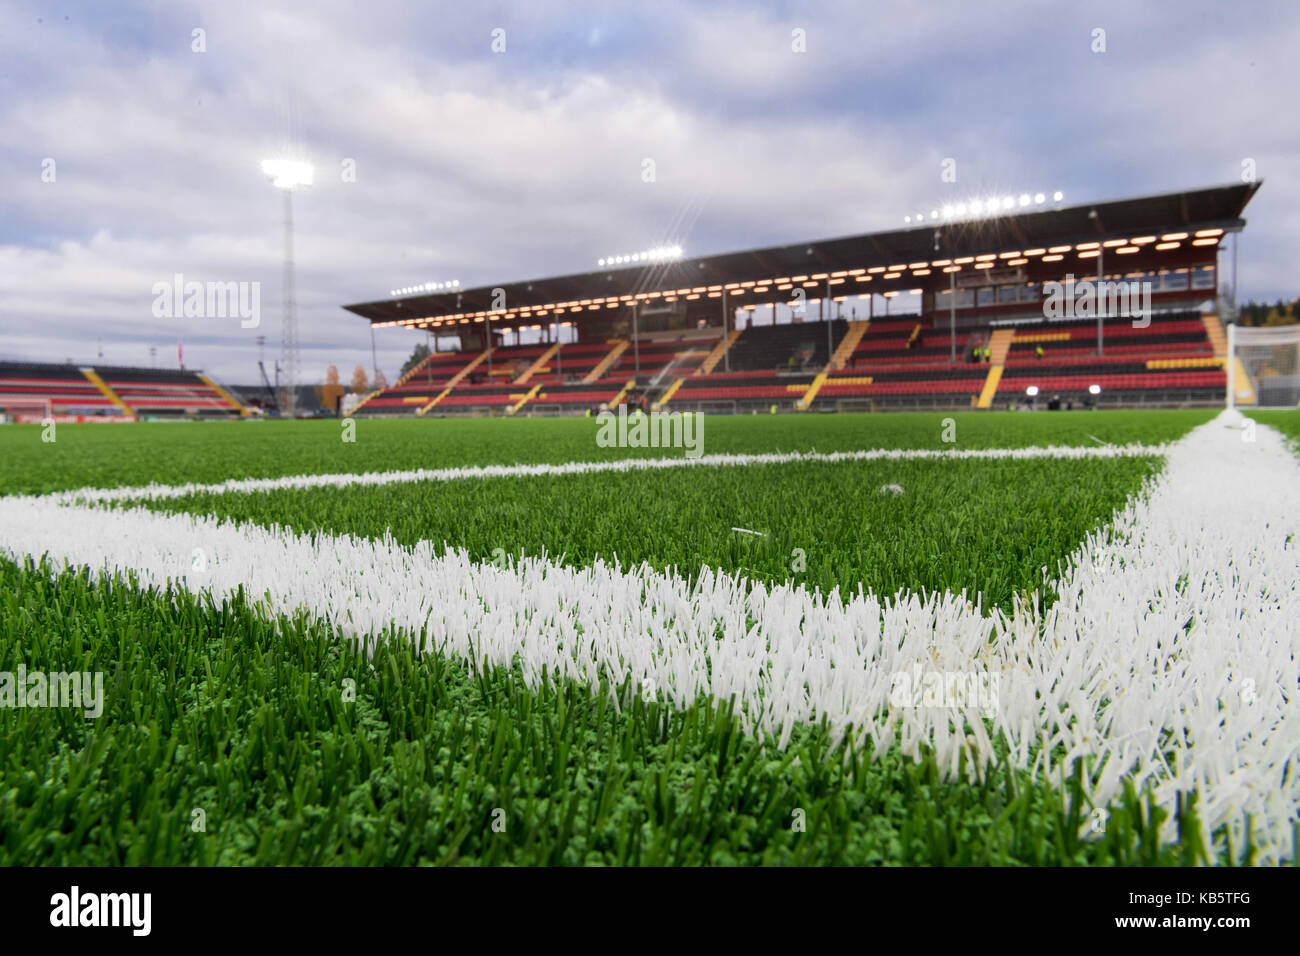 Ostersund, Sweden. 28th Sep, 2017. The pitch is watered before the Europa League match between Ostersunds FK and Hertha BSC at the Jaemtkraft Arena in Ostersund, Sweden, 28 September 2017. Credit: Soeren Stache/dpa/Alamy Live News Stock Photo